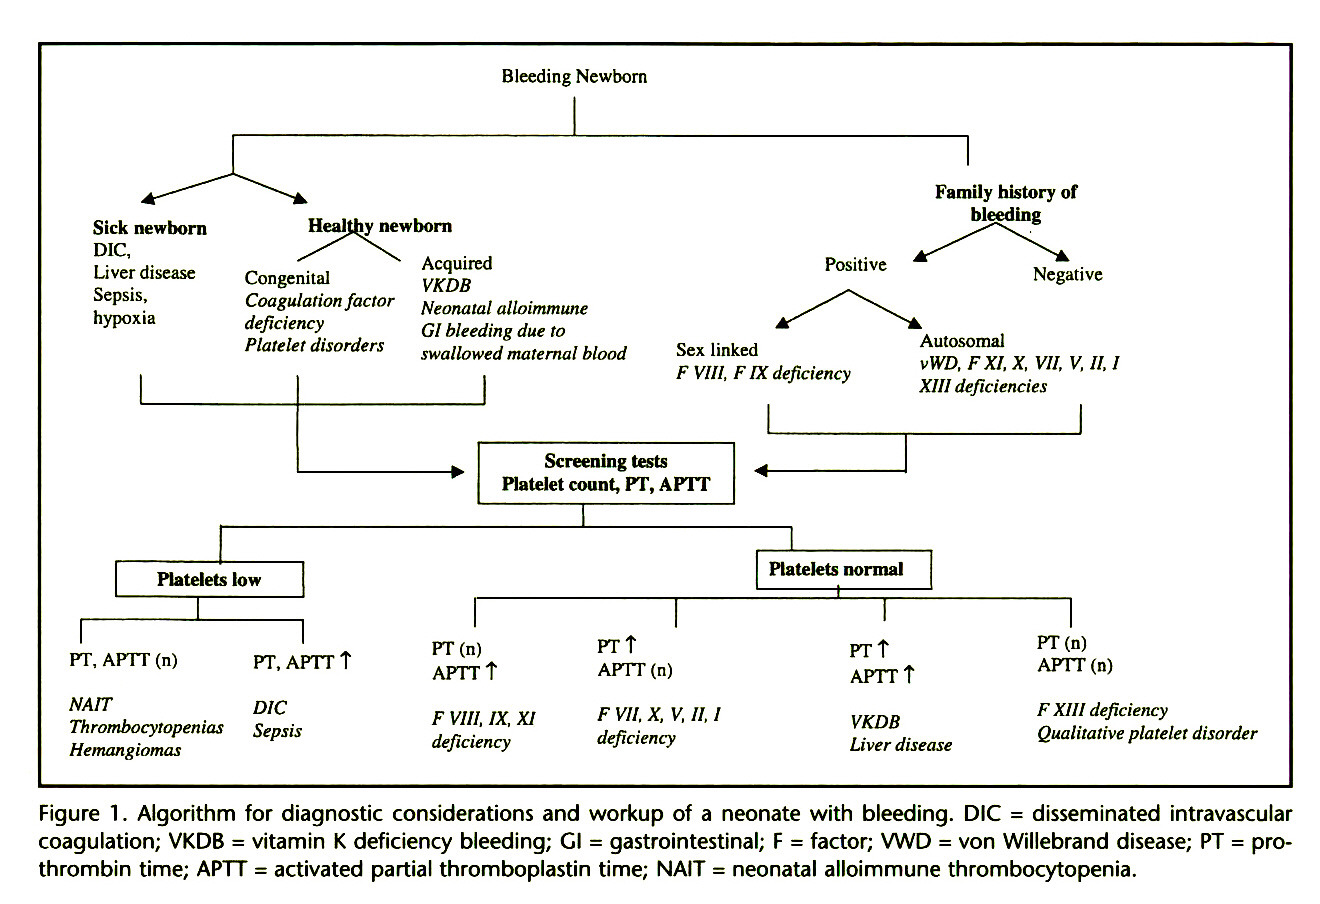 Figure 1 . Algorithm for diagnostic considerations and workup of a neonate with bleeding. DIC = disseminated intravascular coagulation; VKDB = vitamin K deficiency bleeding; Cl = gastrointestinal; F = factor; VWD = von Willebrand disease; PT = prothrombin time; APTT = activated partial thromboplastin time; NAIT = neonatal alloimmune thrombocytopenia.